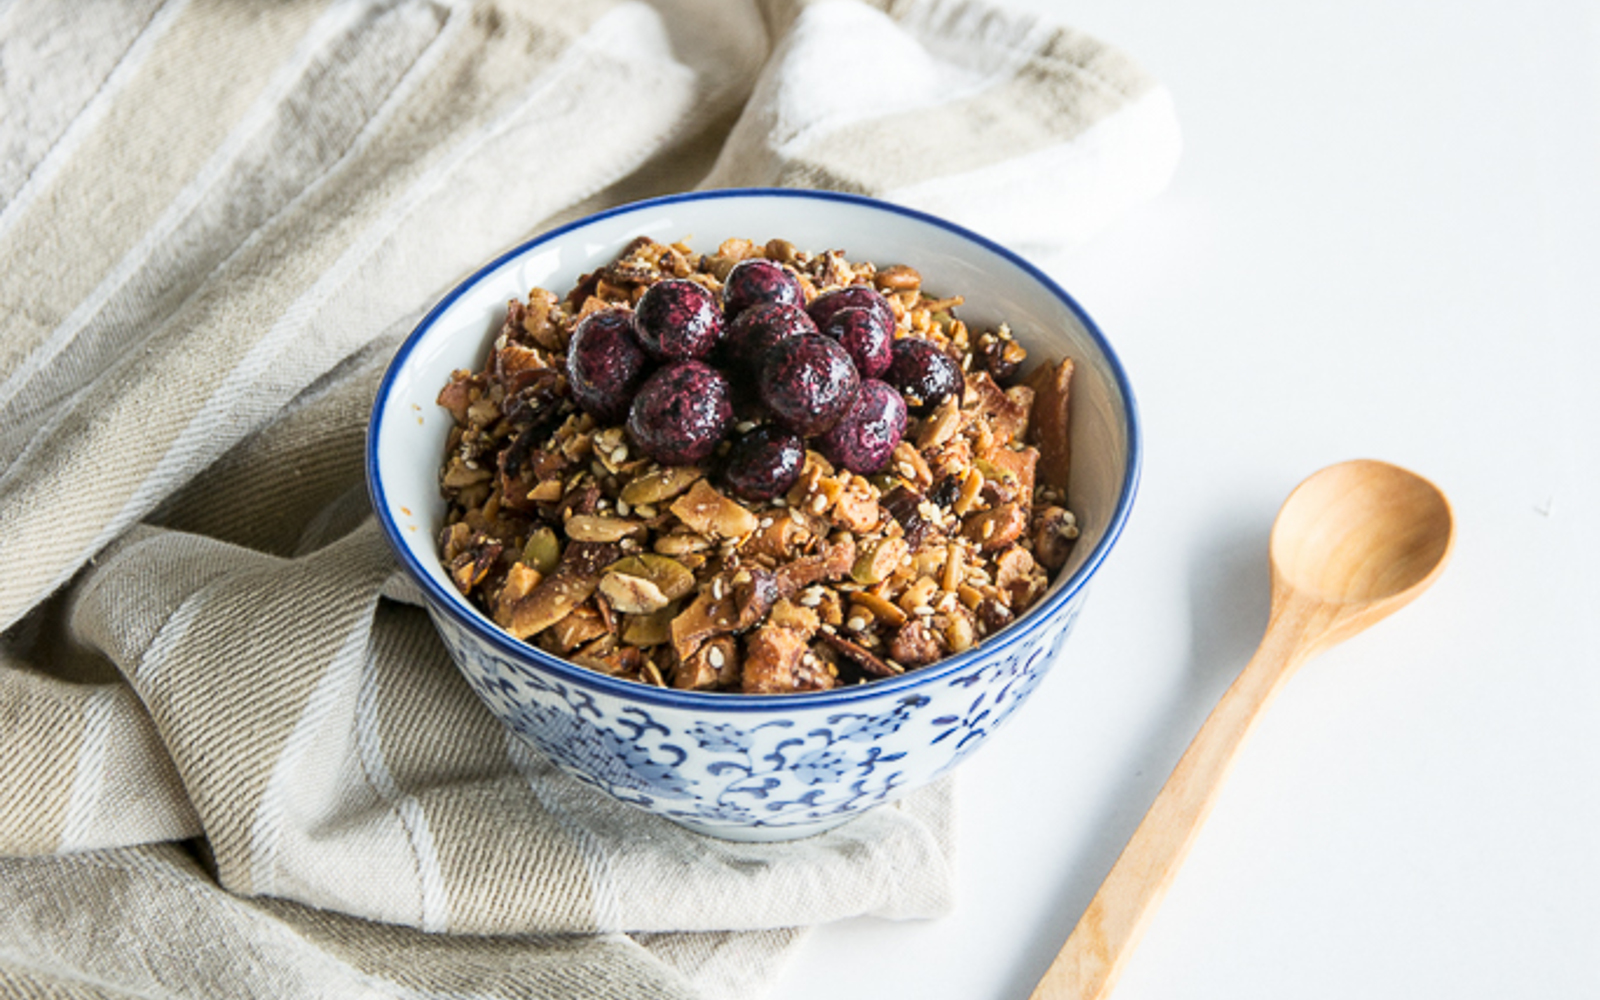 Vegan Paleo Granola topped with berries 2